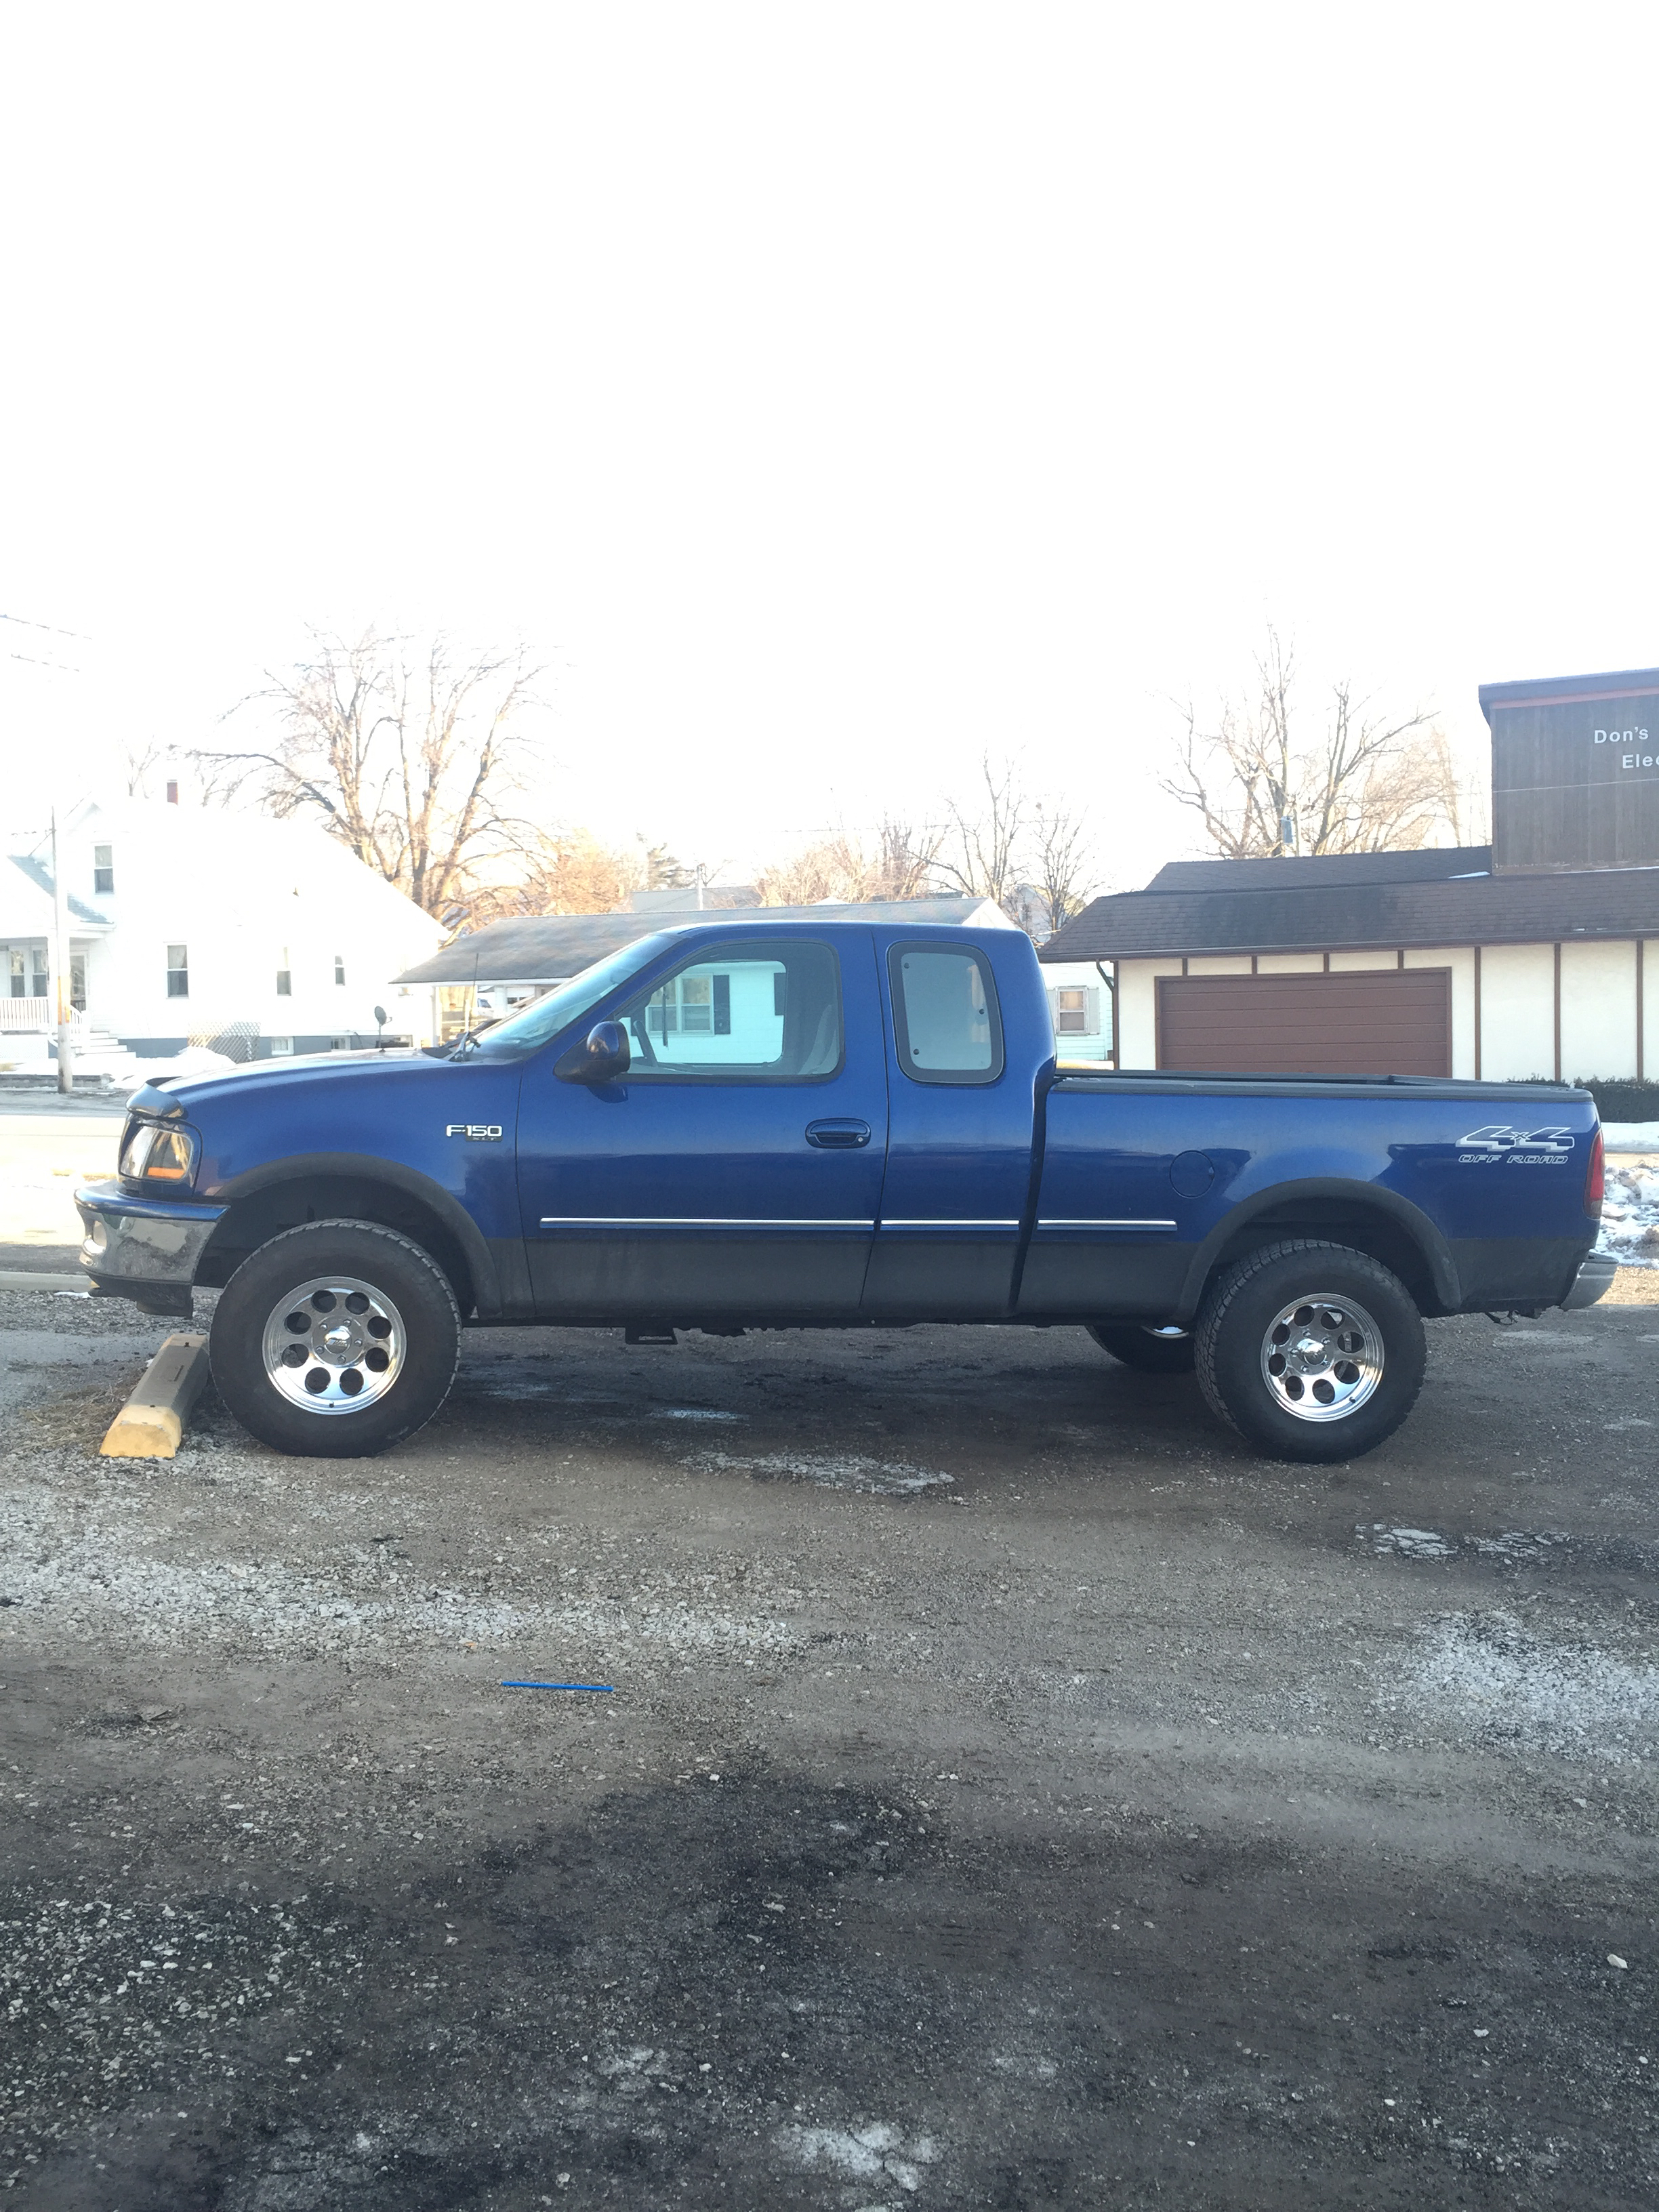 Ford F150 Rocker Panel Covers : rocker, panel, covers, Ideas, Rocker, Panel, Forum, Community, Truck